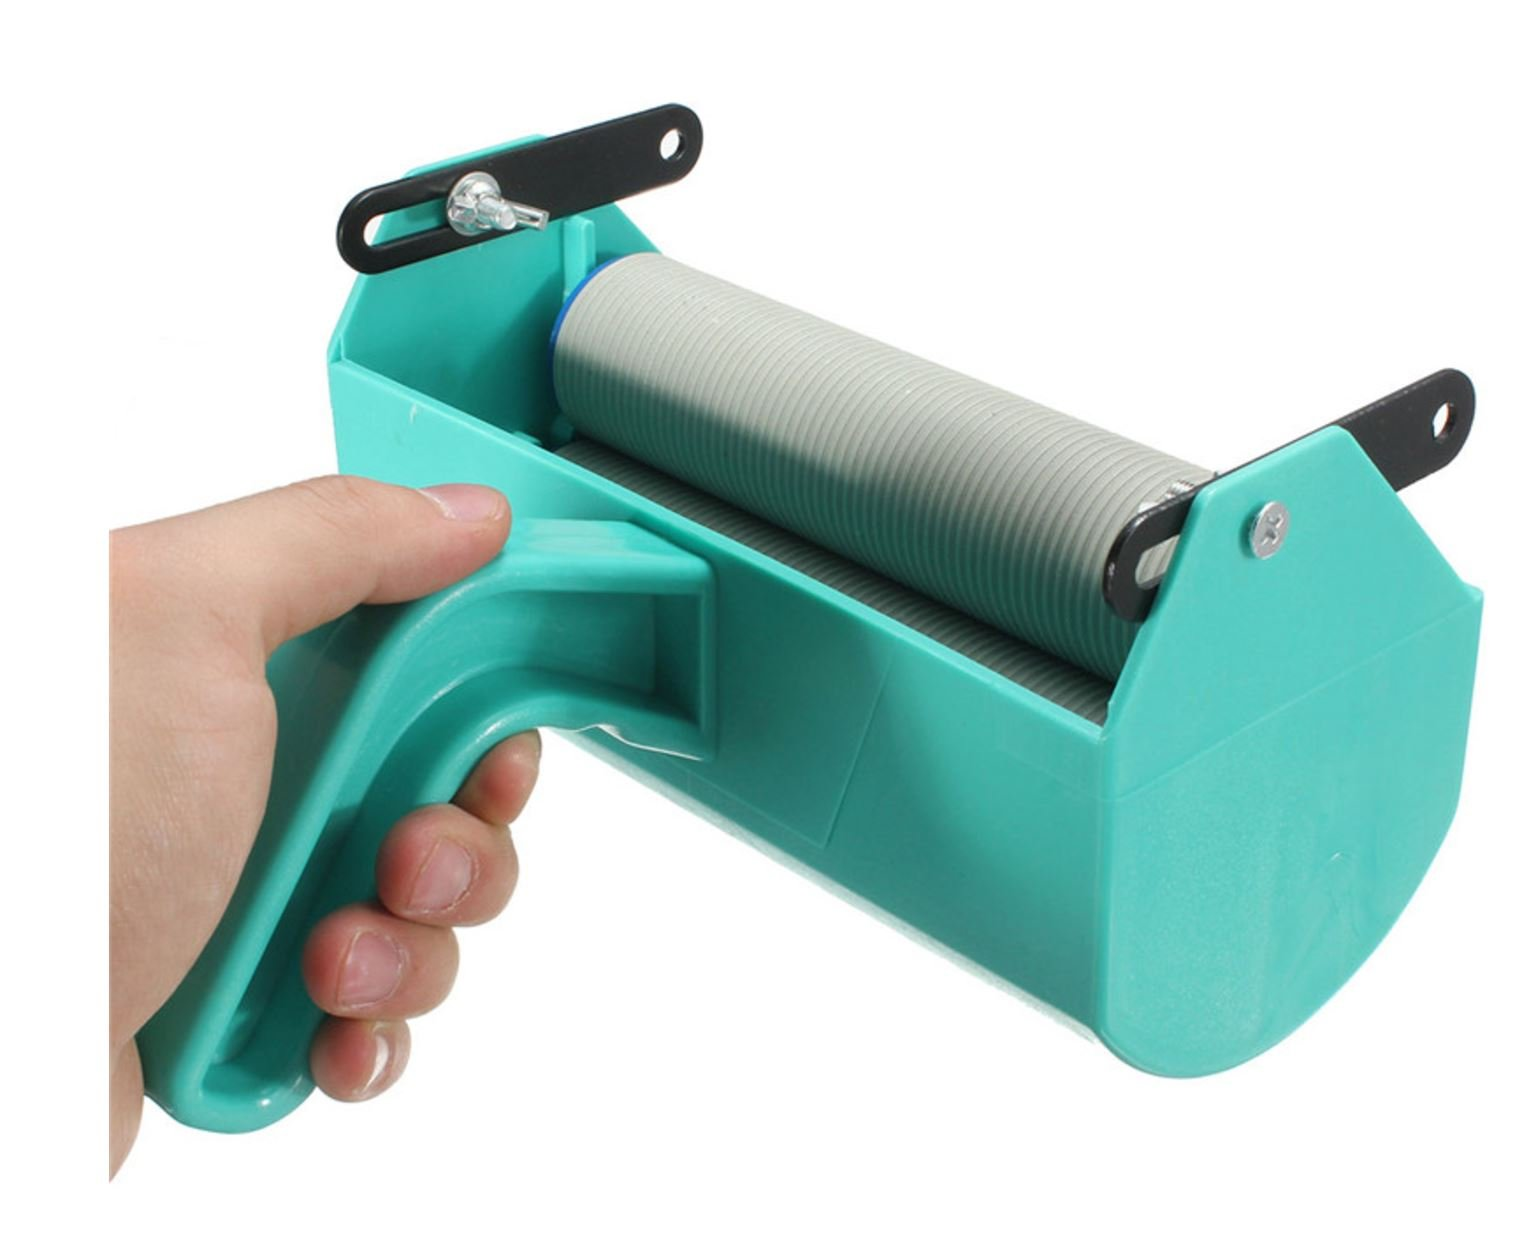 Single Color Decoration Paint Painting Tool for 7 Inch Wall Roller Brush by Superjune